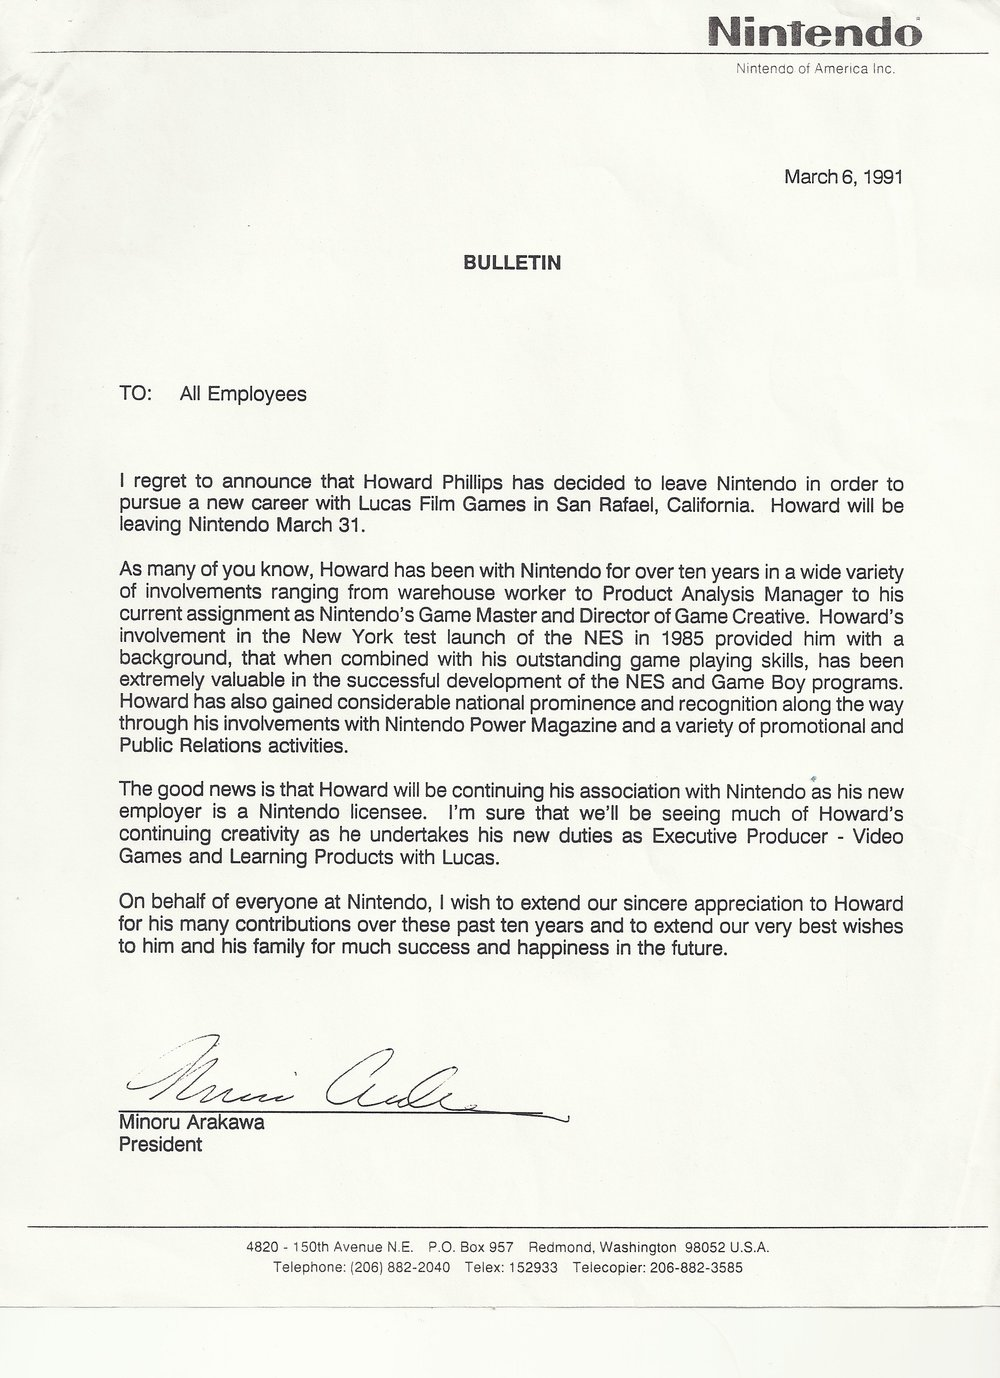 Howard Phillips Exit Letter.JPG